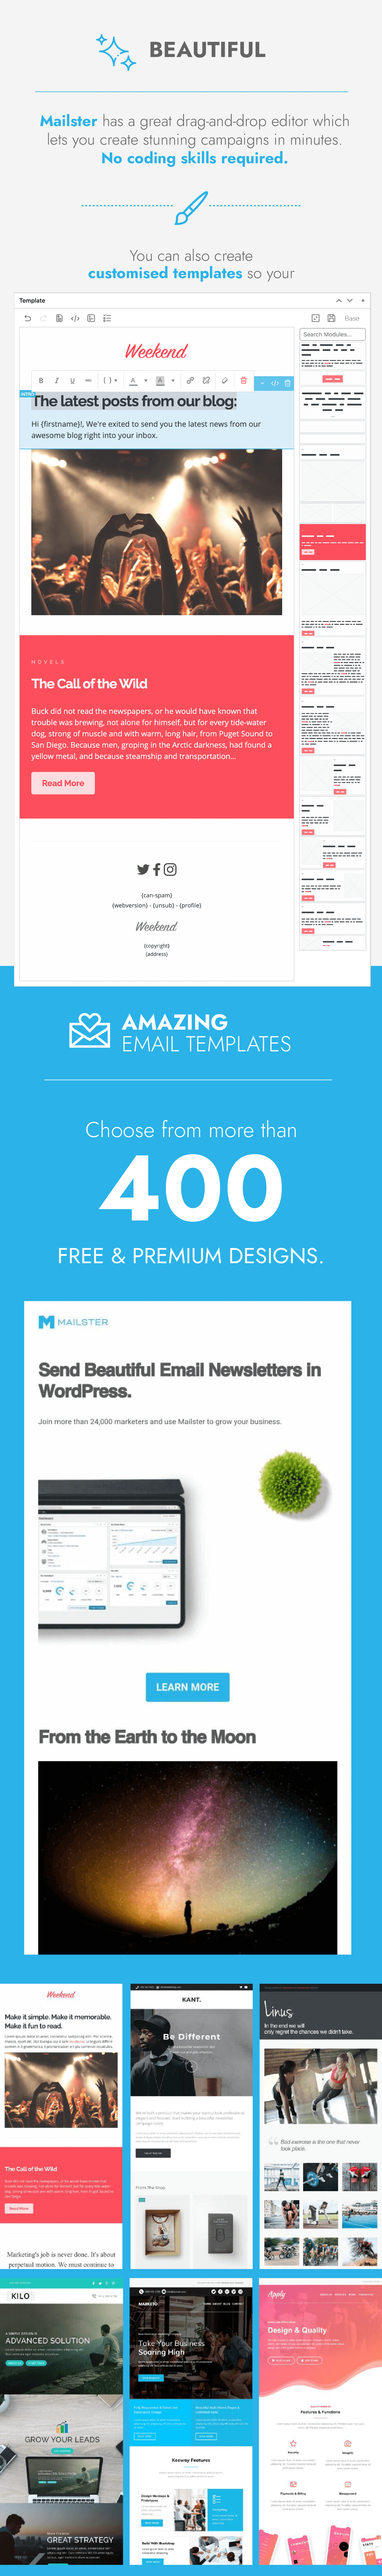 Mailster - Email Newsletter Plugin for WordPress - 2